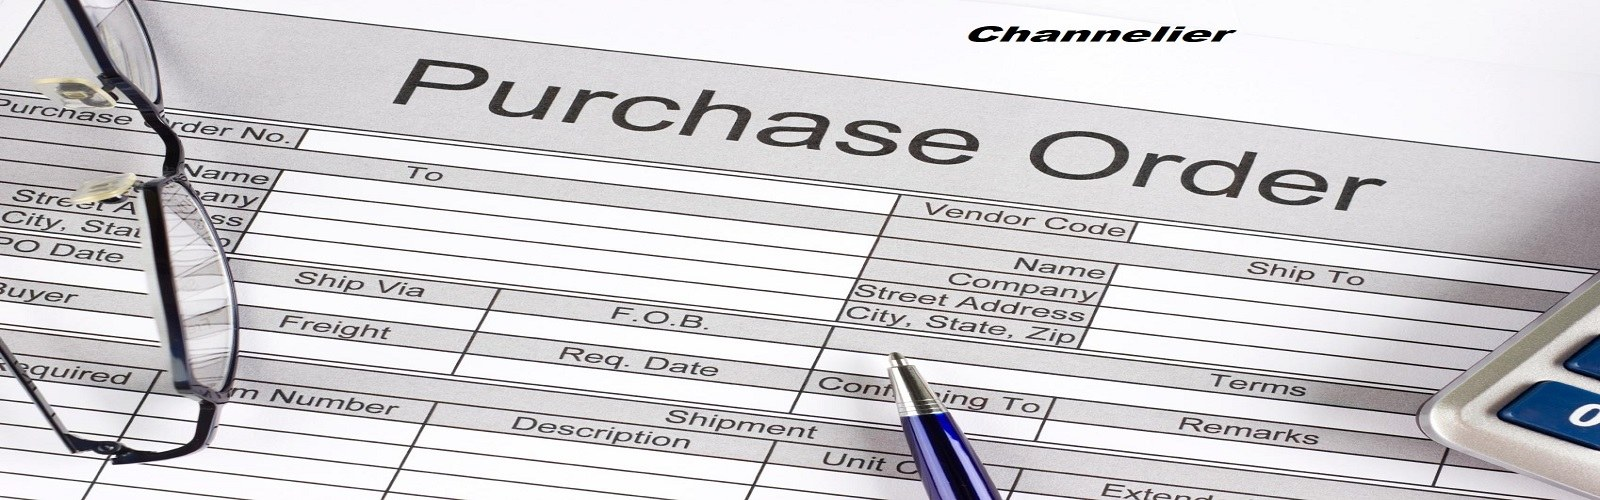 Manage vendors and purchase orders effectively